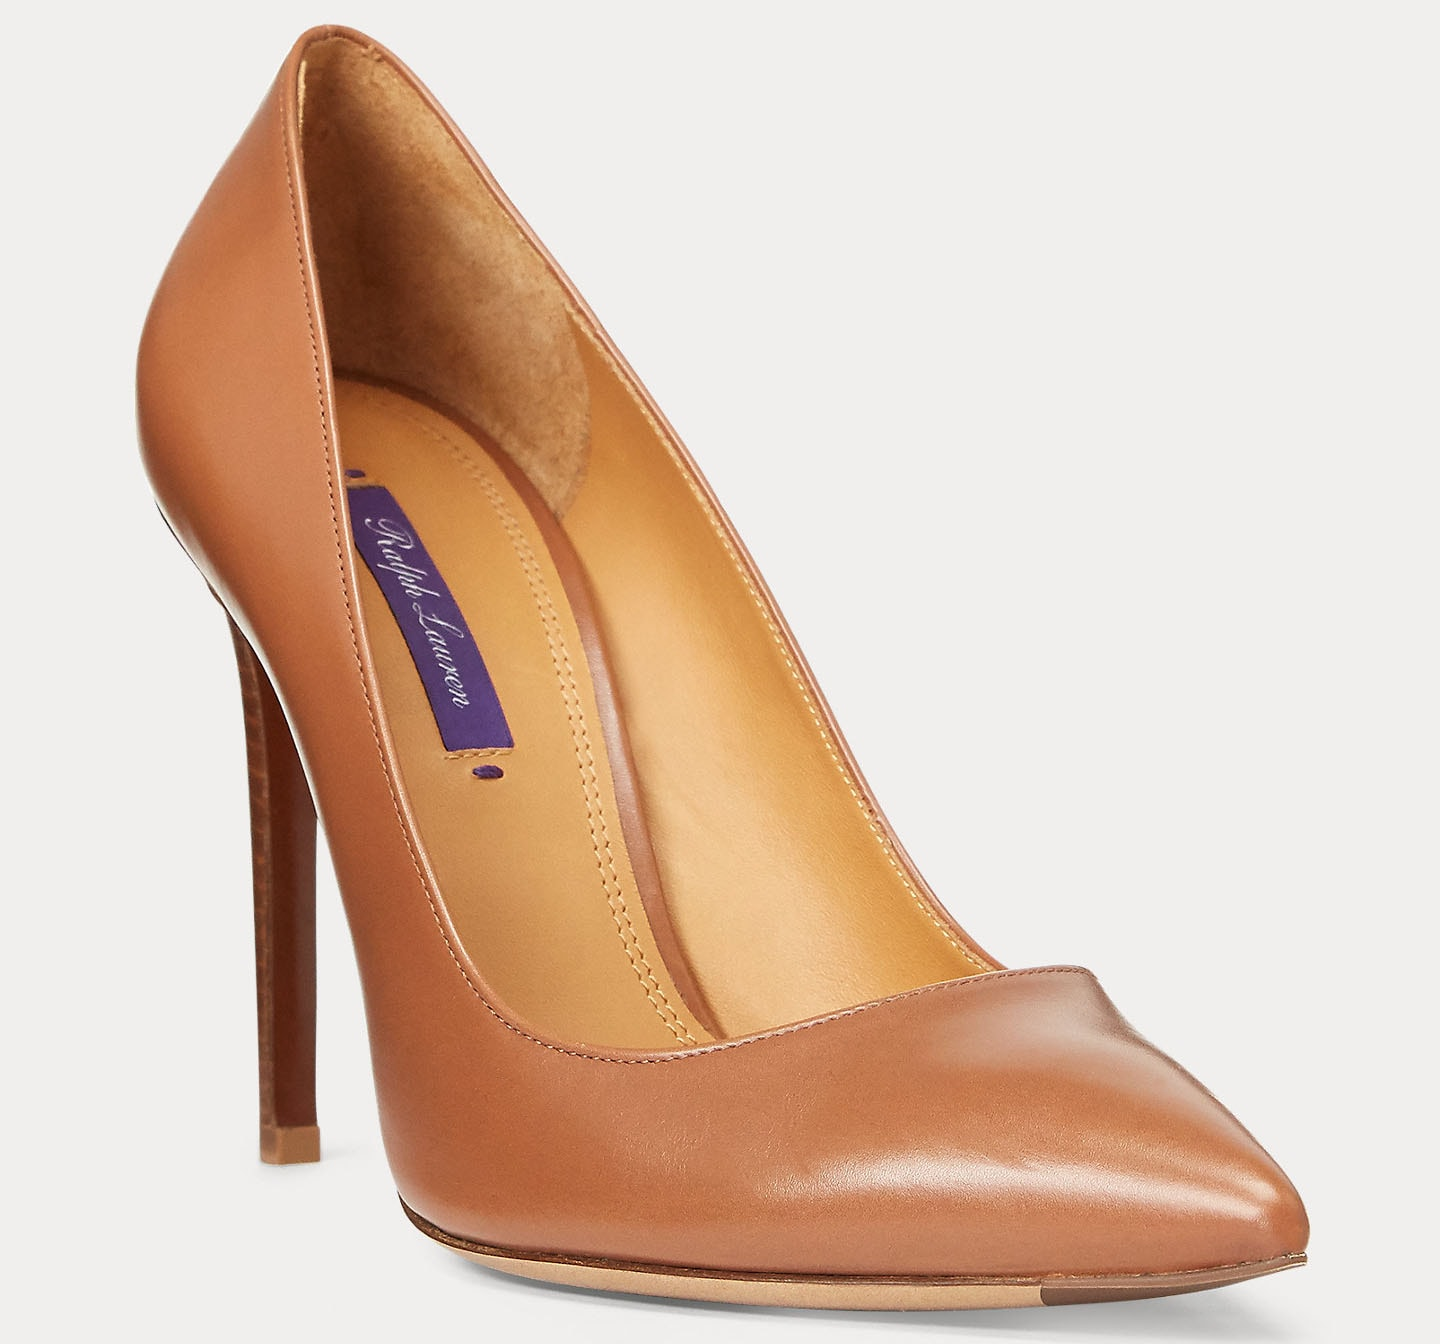 The Celia pumps are aniline-dyed to amplify the full-grain calfskin leather's natural texture